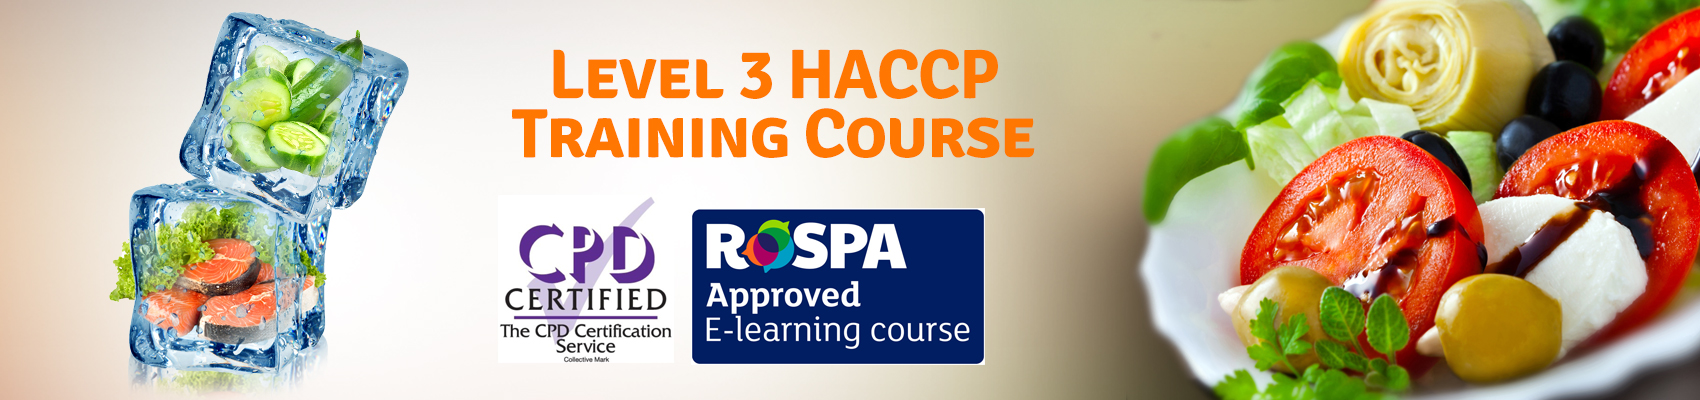 Level 3 HACCP Training Course - GREEN WORLD GROUP INDIA